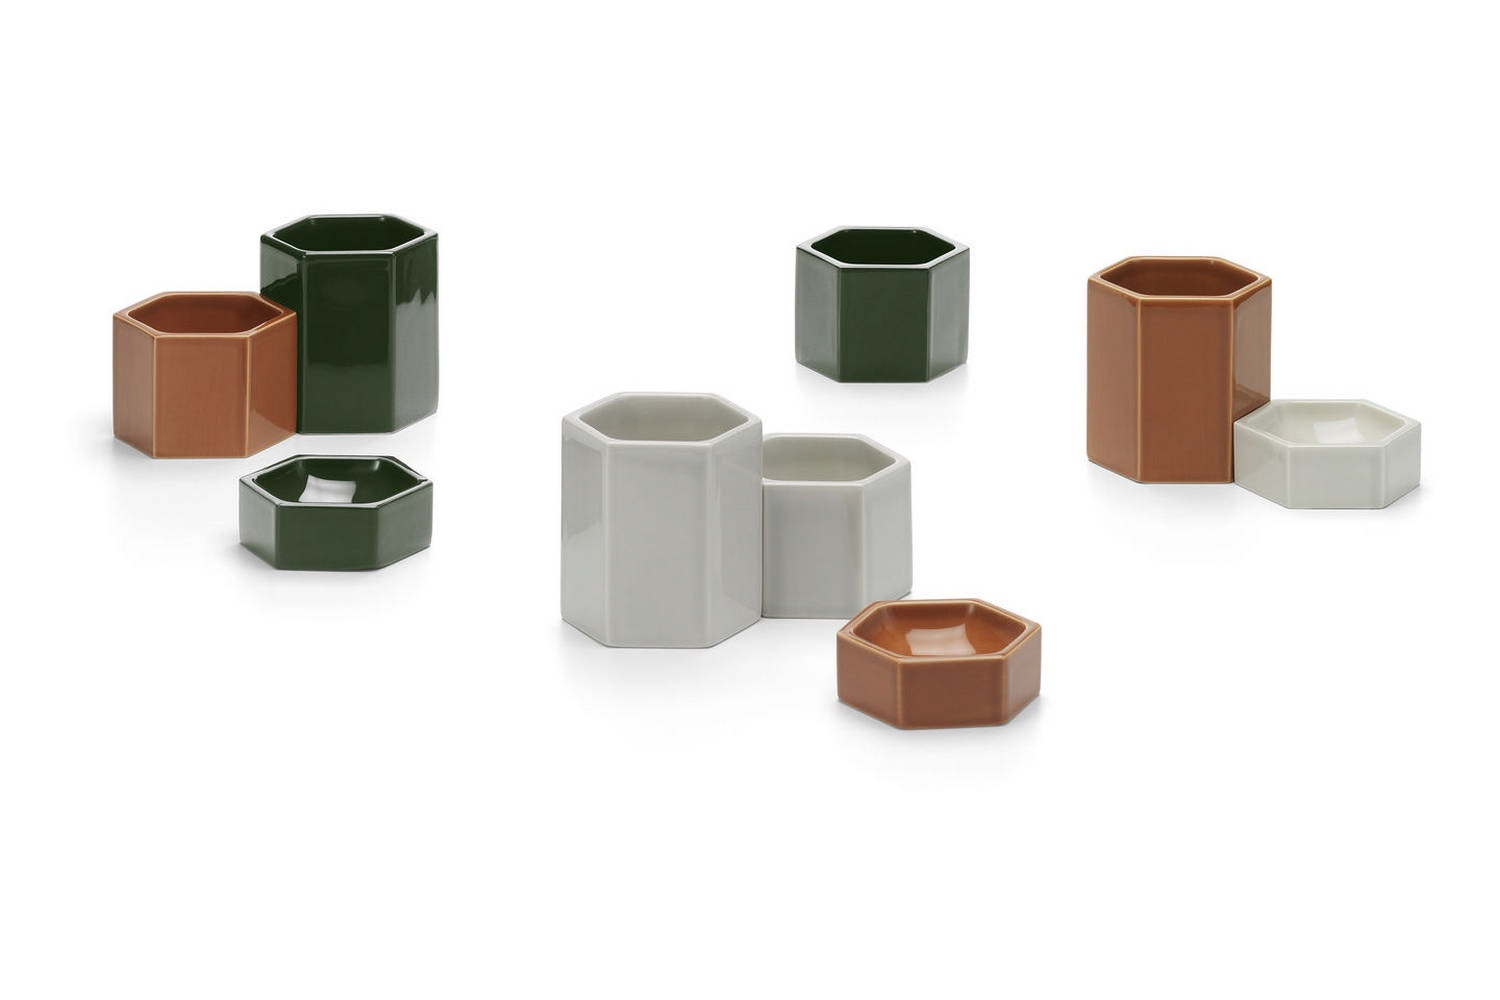 Hexagonal Containers by Jasper Morrison for Vitra